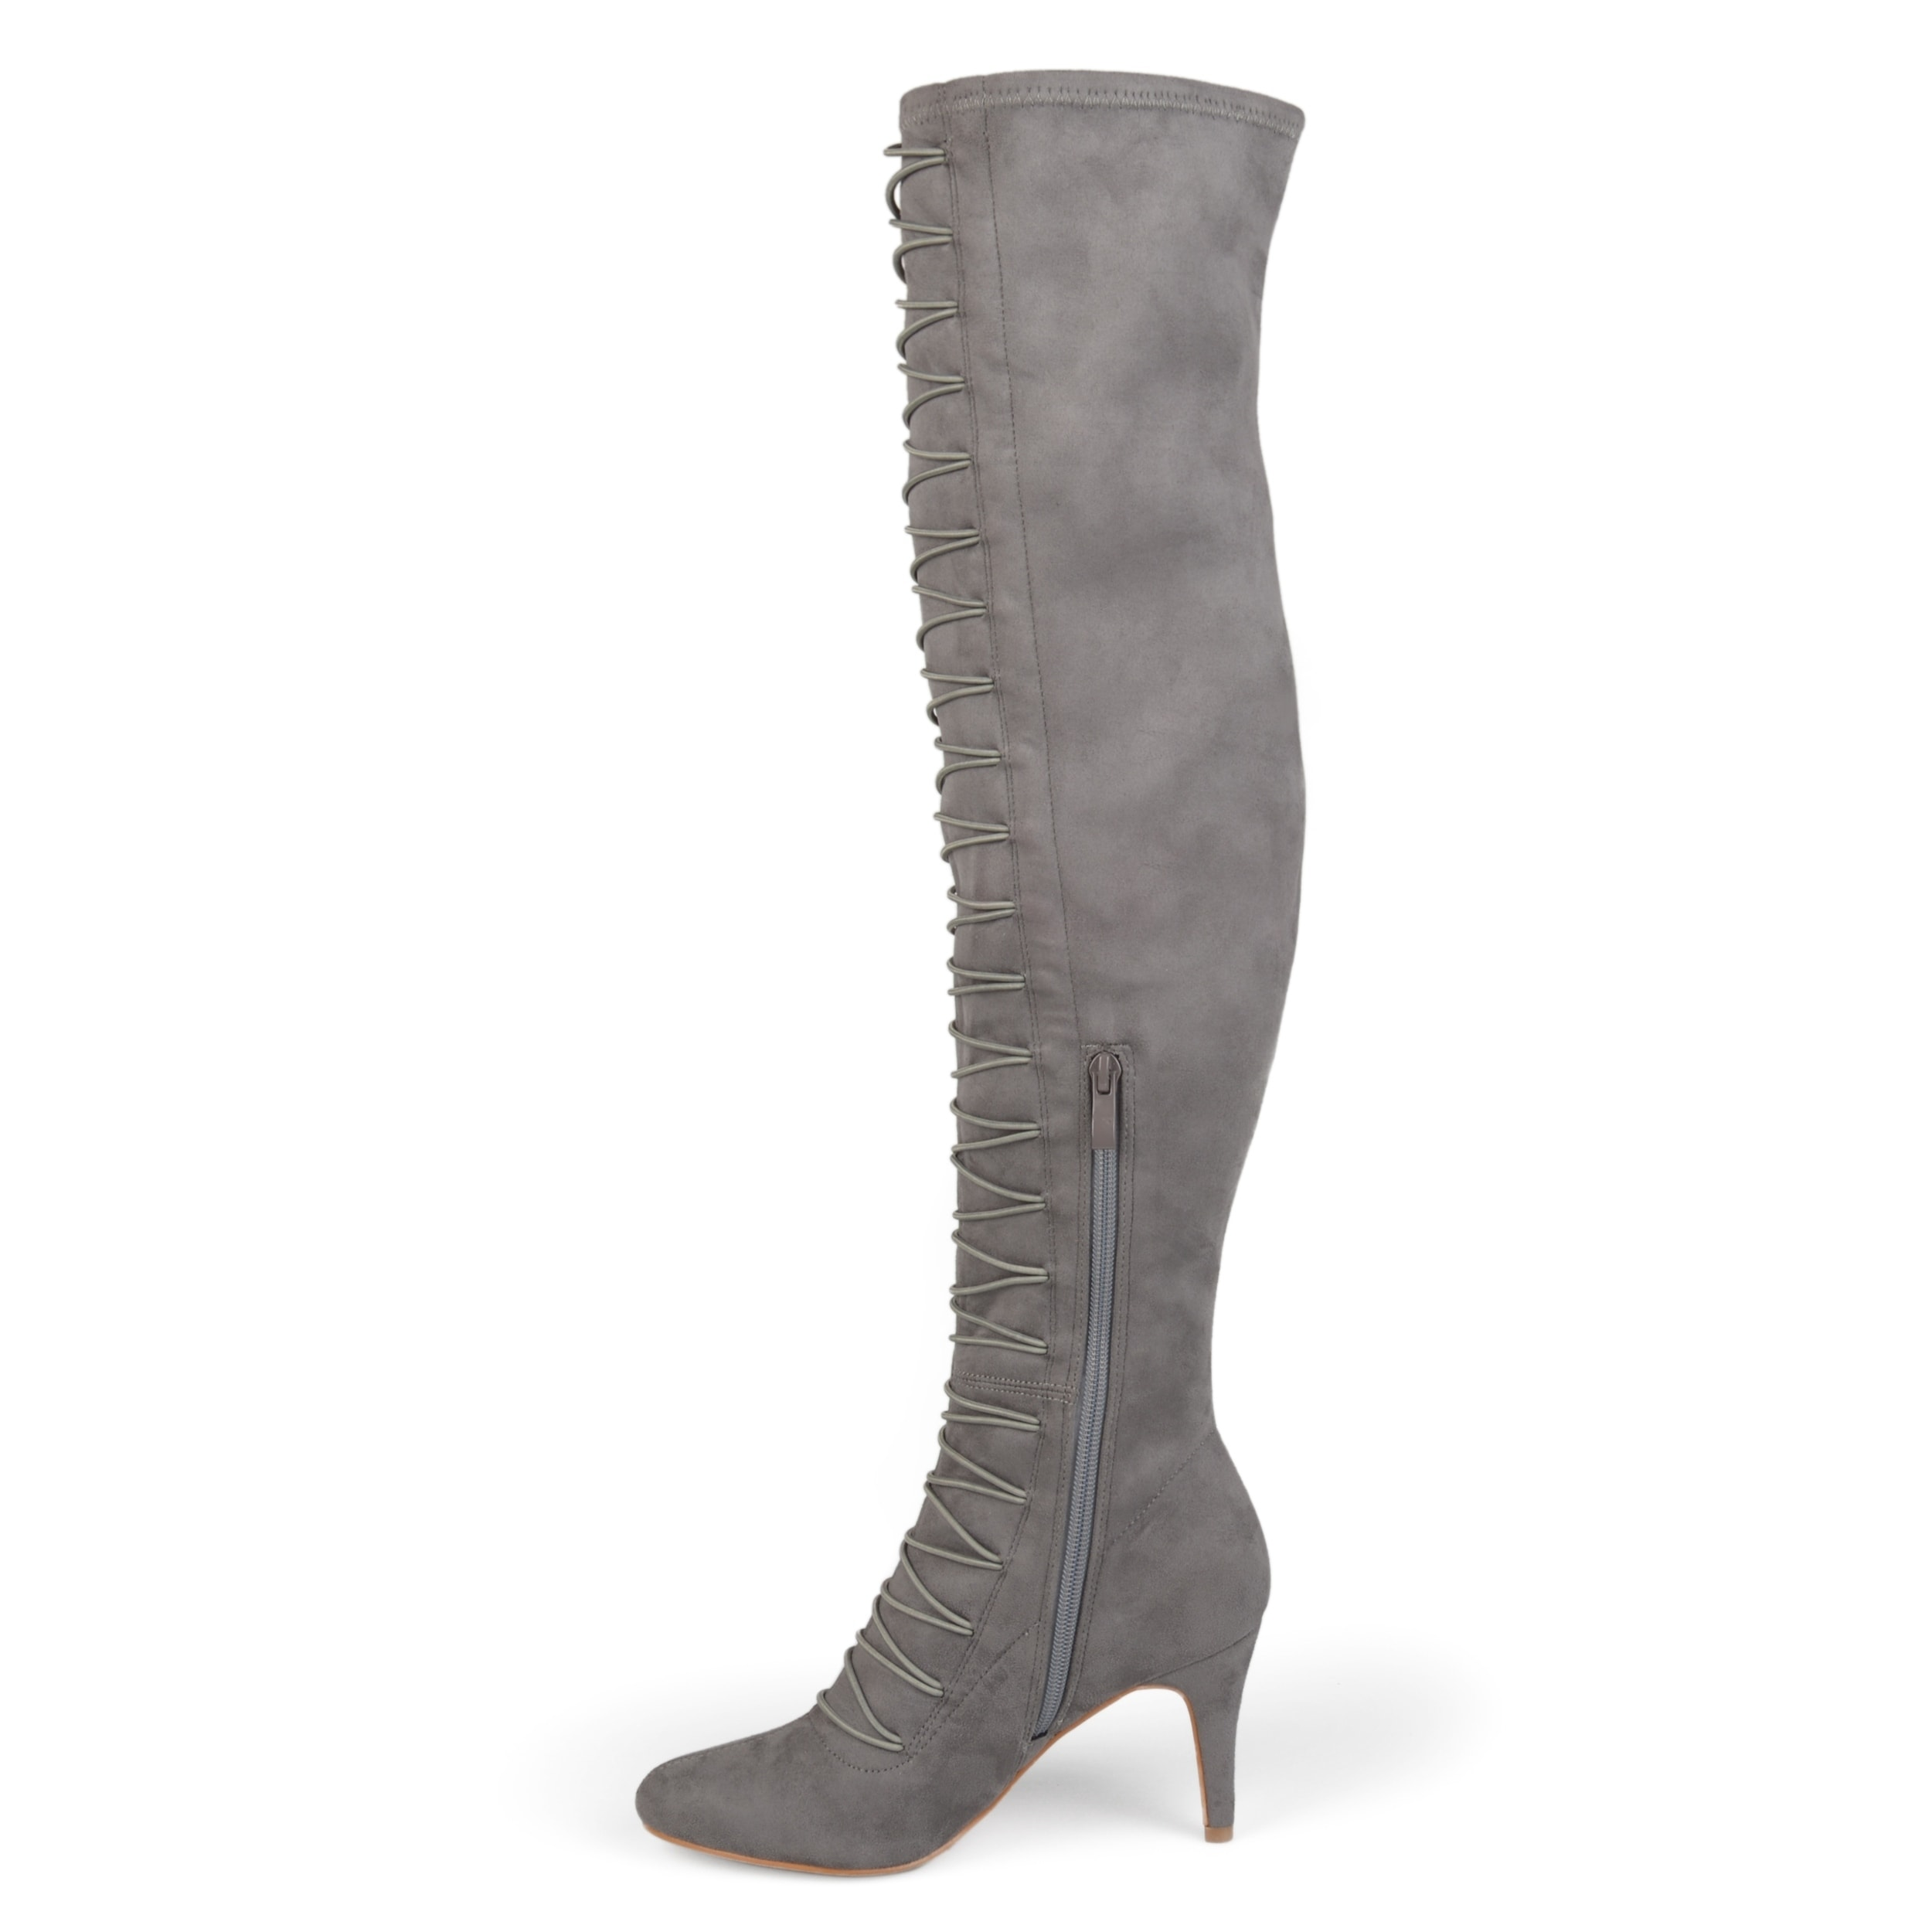 b5b57ae7937 Shop Journee Collection Women s  Trill  Regular and Wide Calf Boots - Free  Shipping Today - Overstock - 17011774